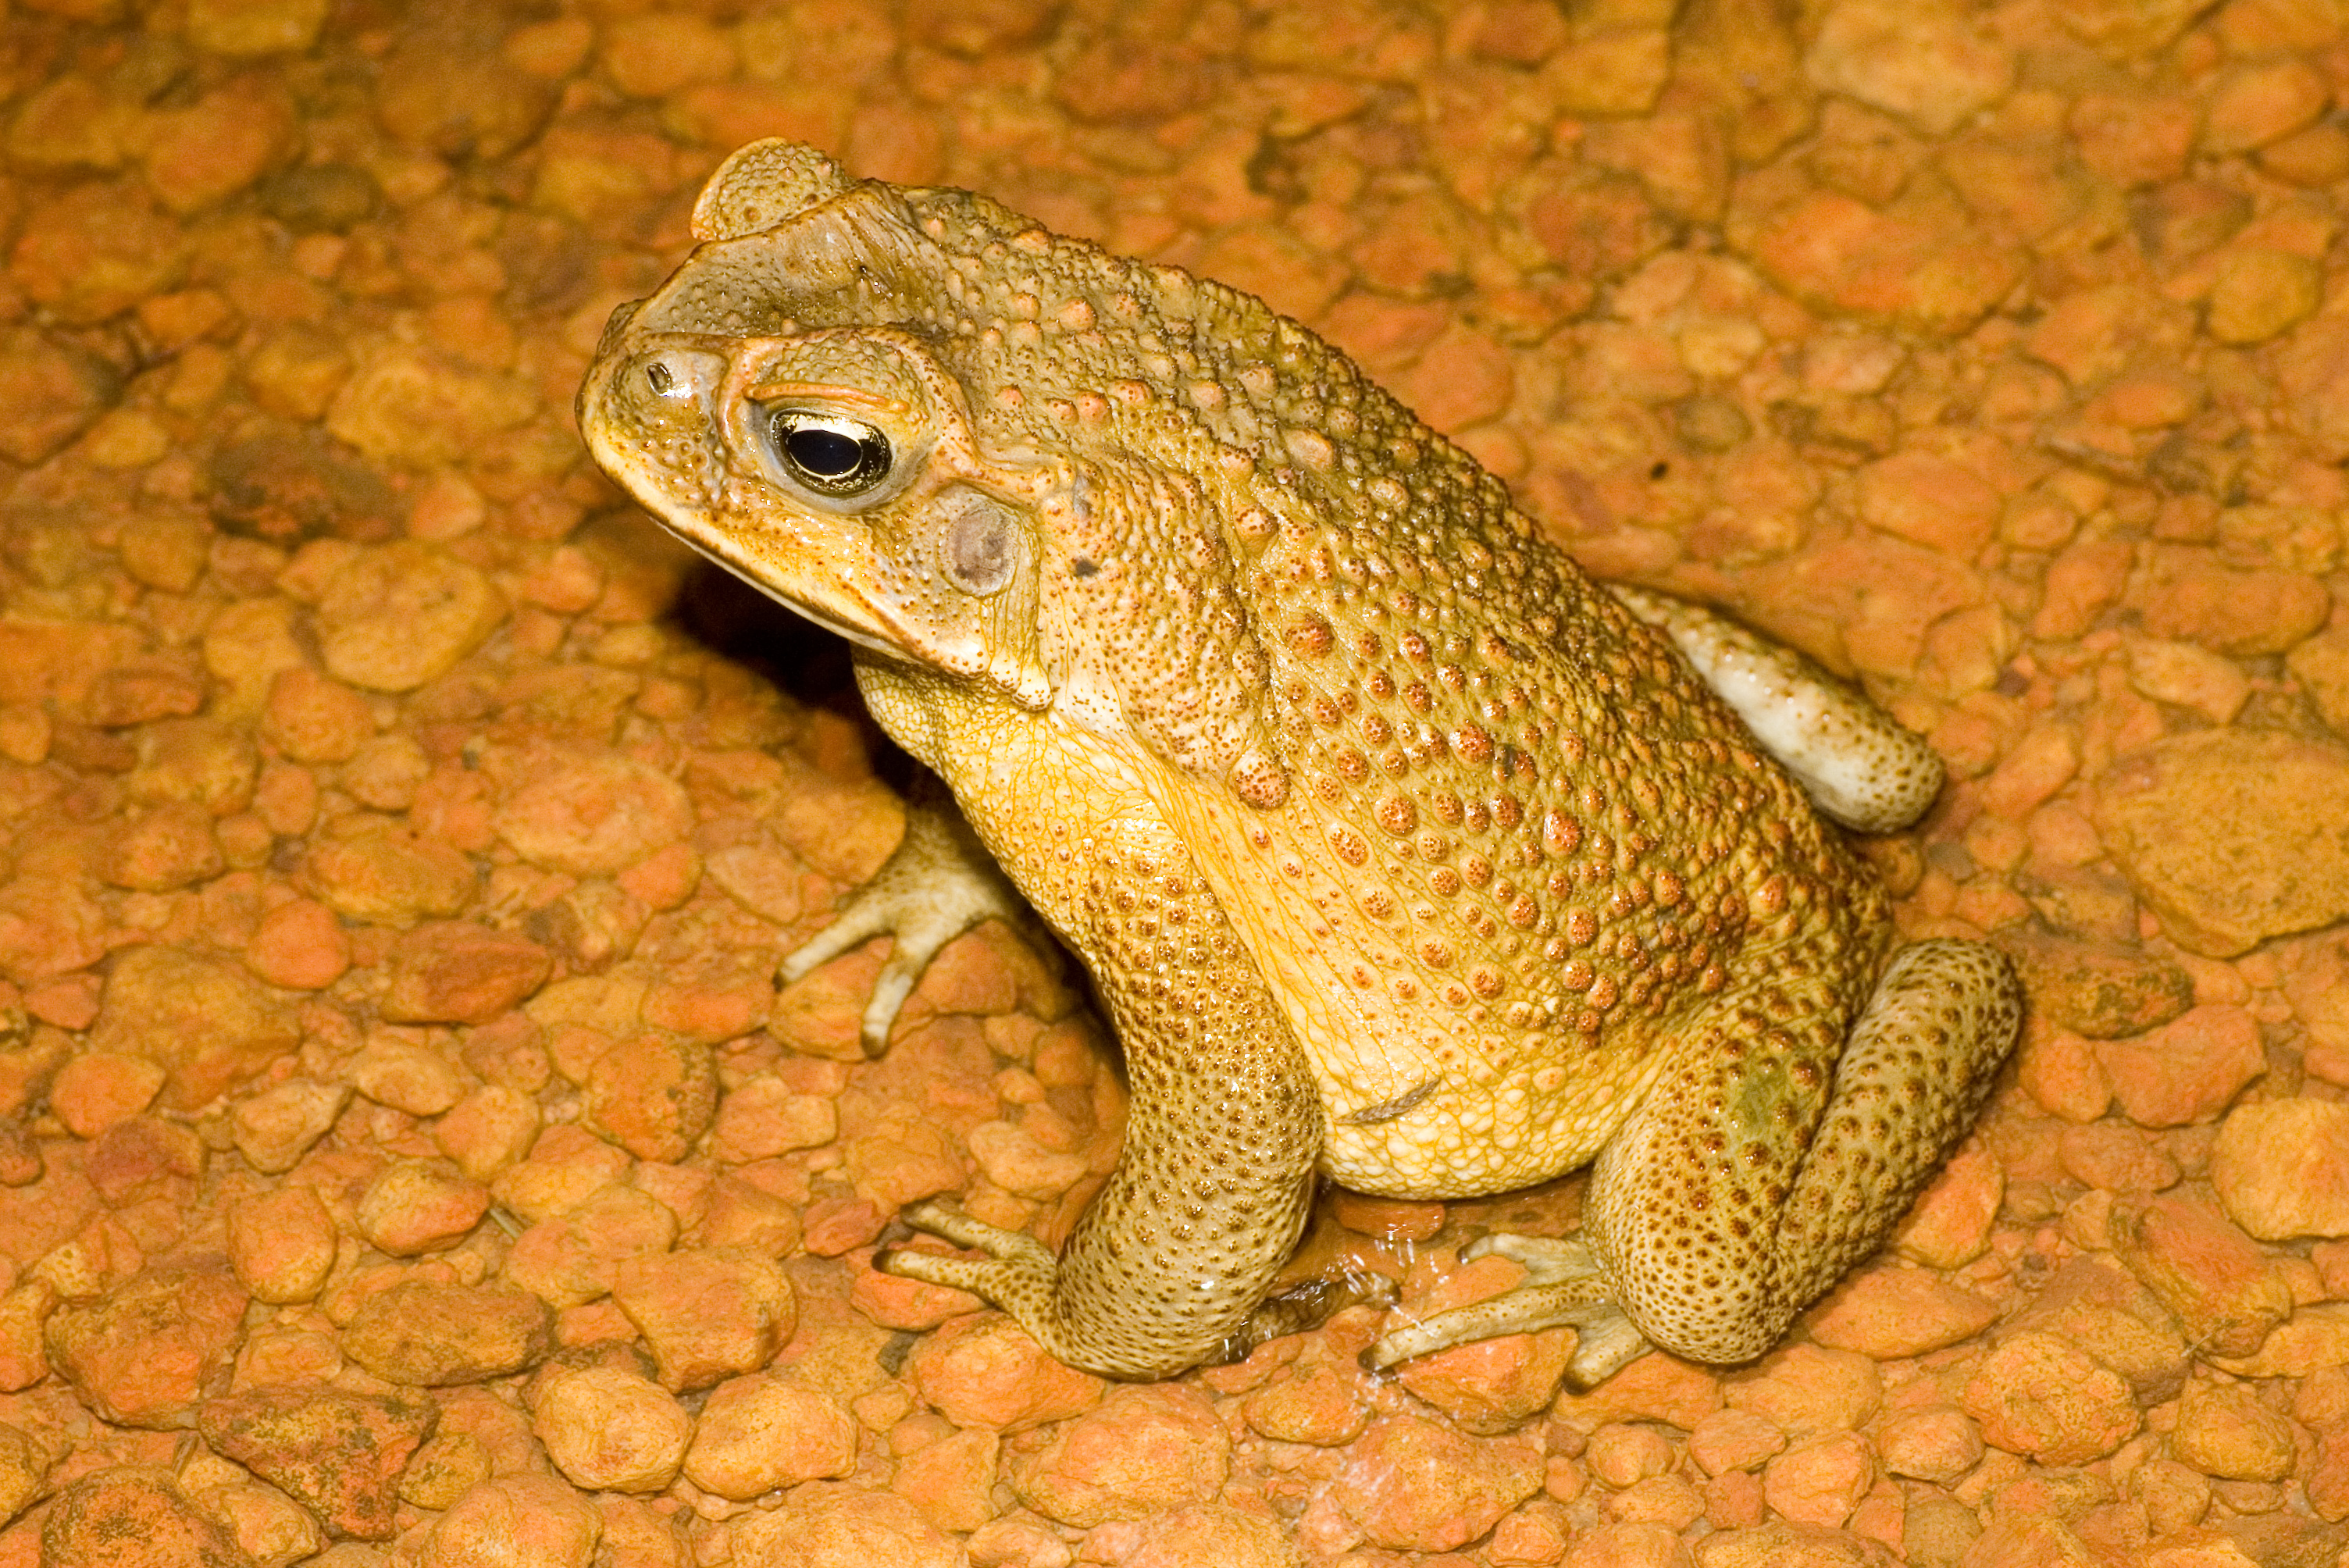 A male cane toad. Photo: David Nelson